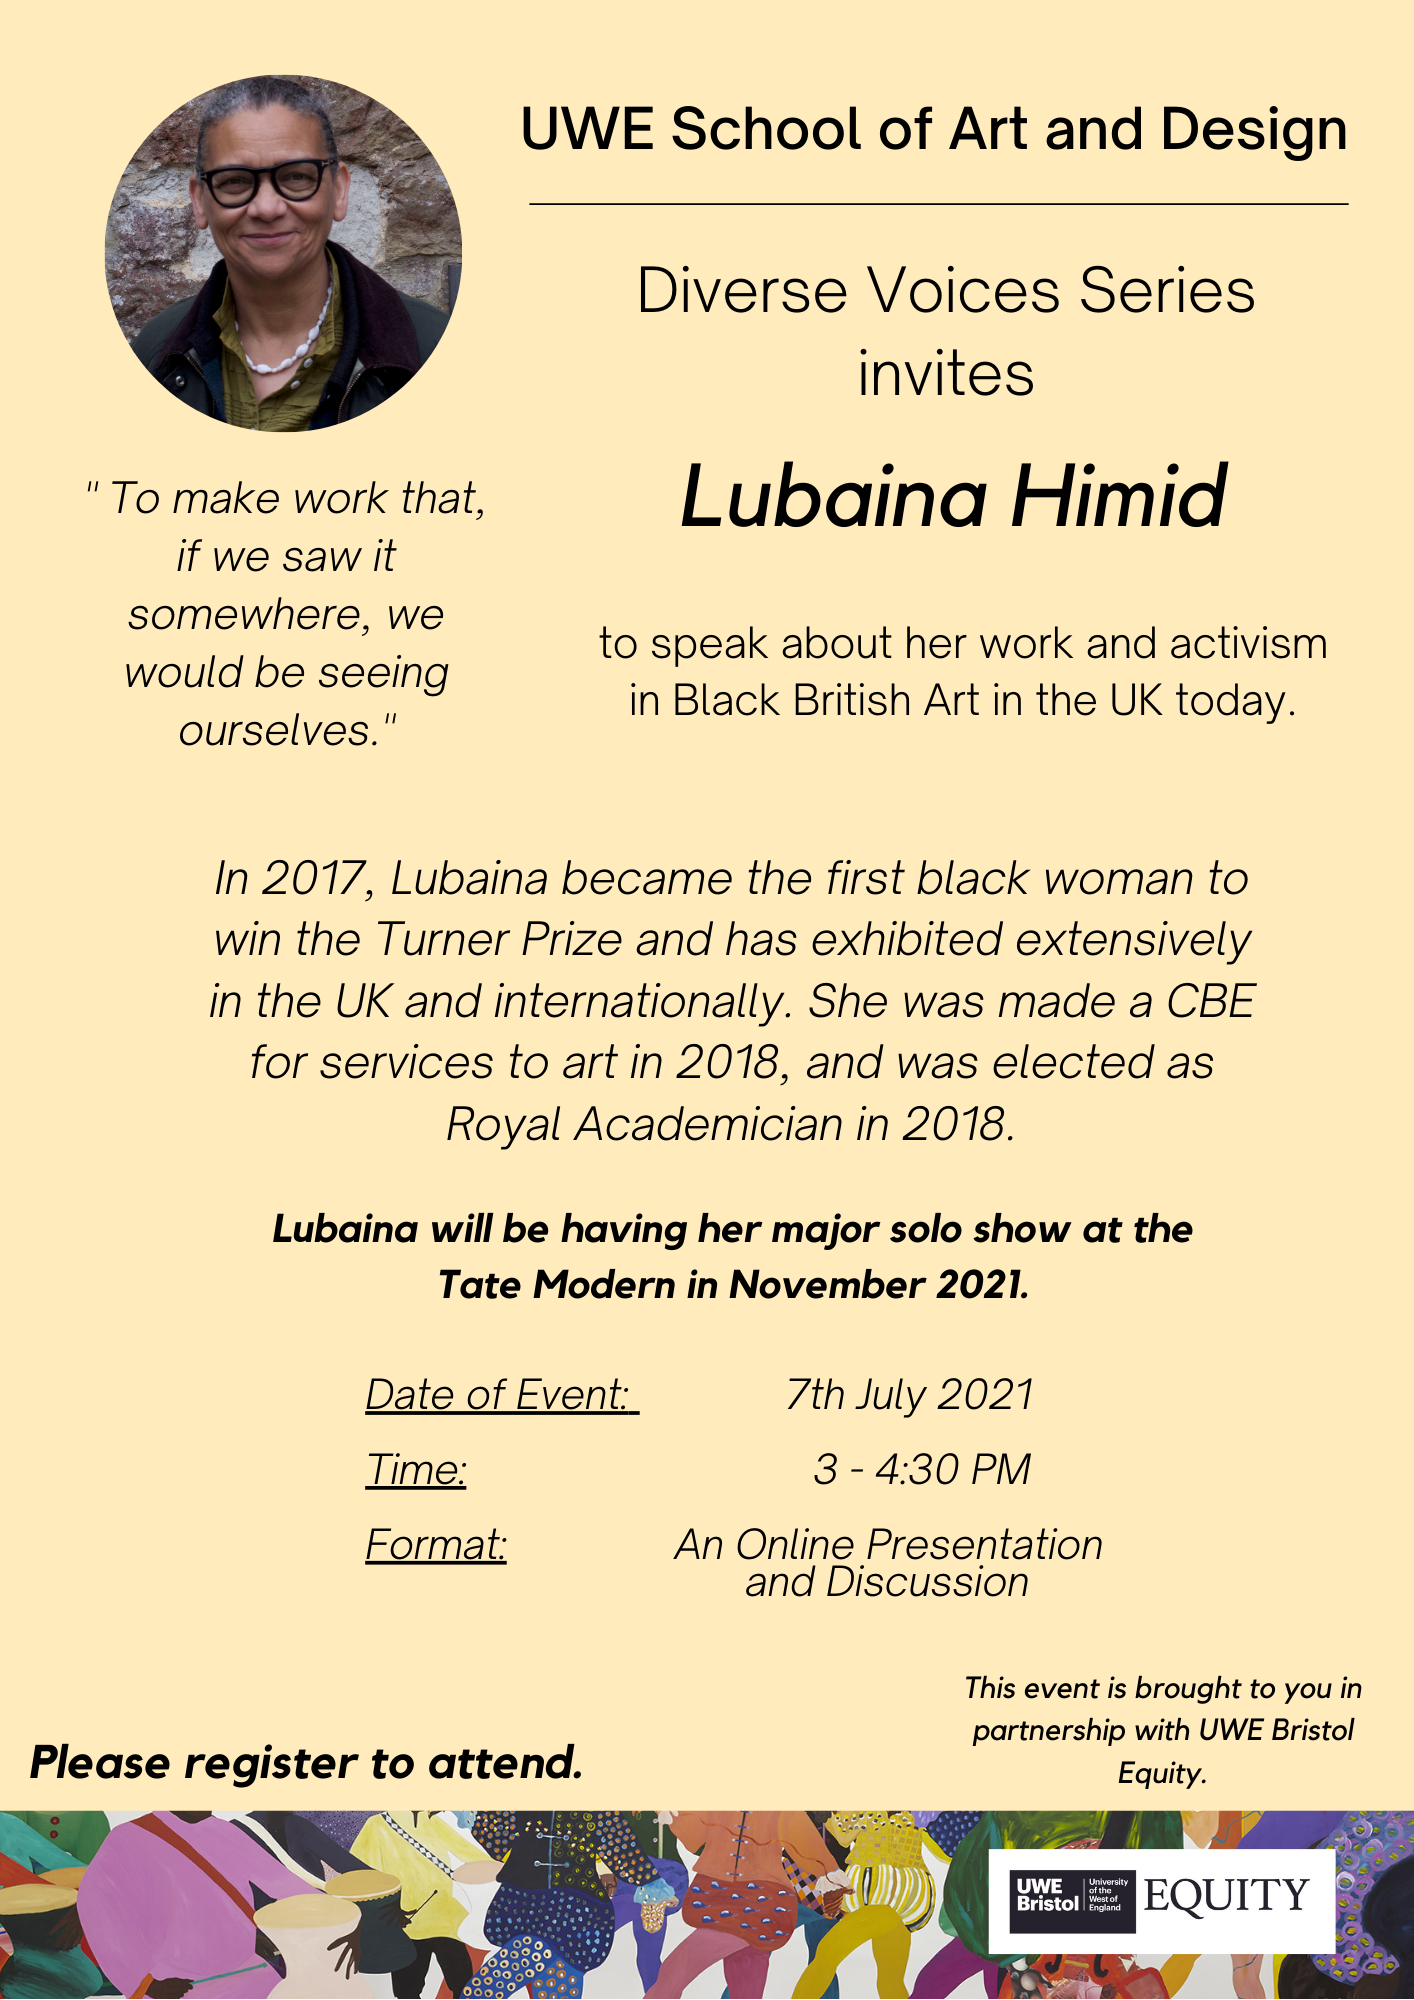 Diverse Voices Series Lubaina Himid UWE EQUITY